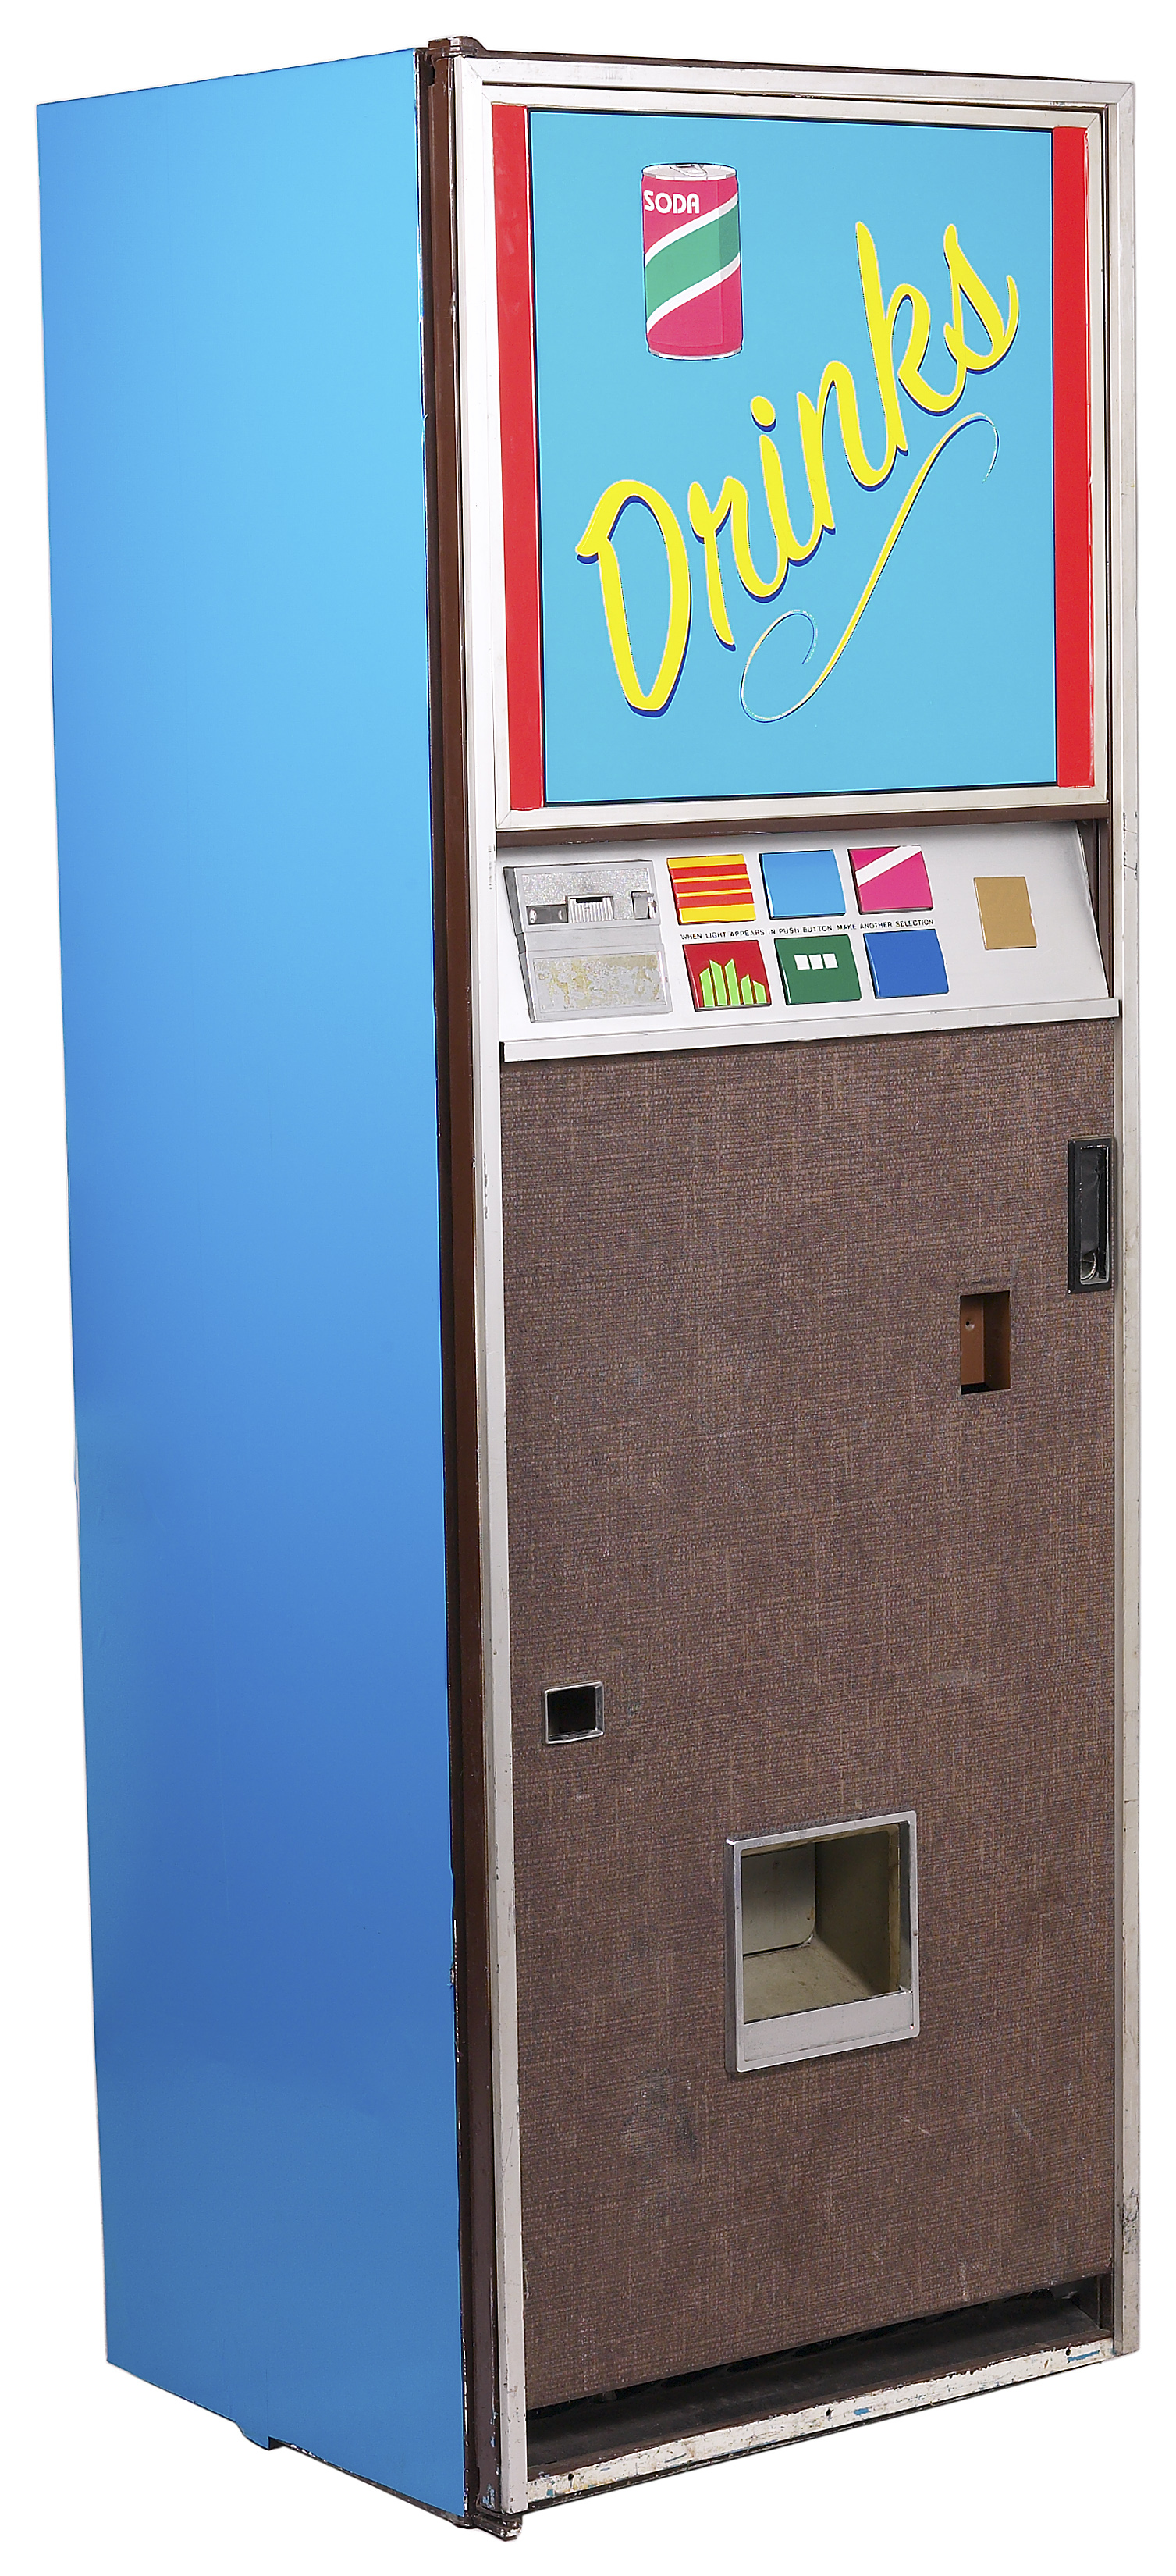 How to Get an Establishment to Let You Put Up a Vending Machine